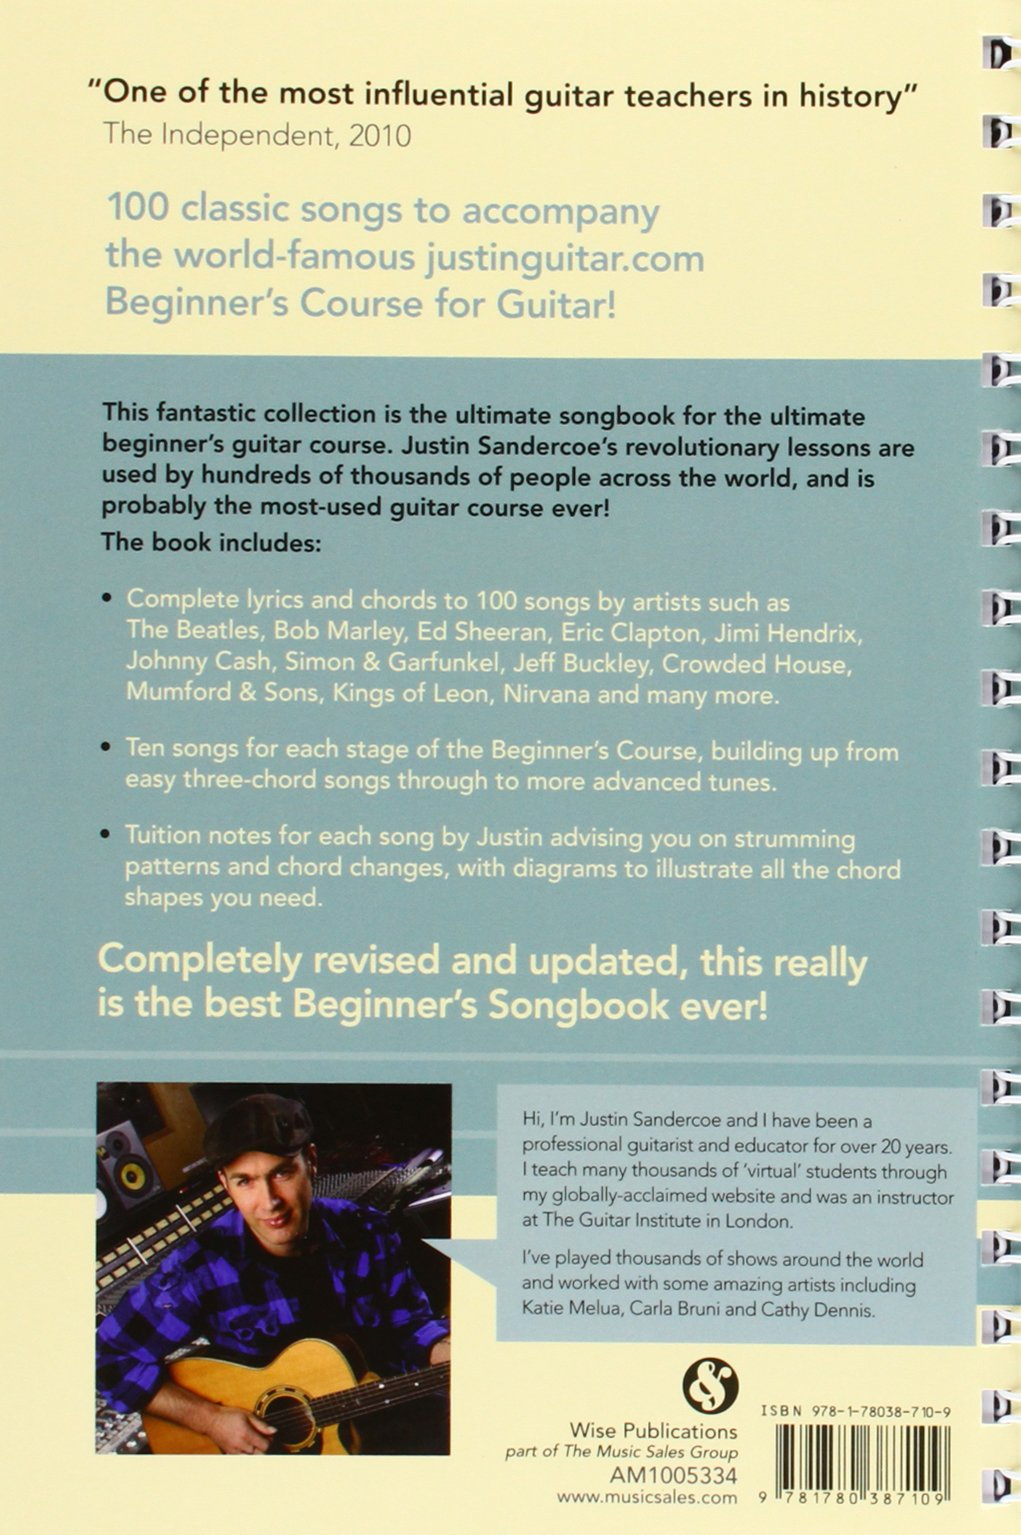 Justinguitar Beginners Songbook 100 Classic Songs Specially